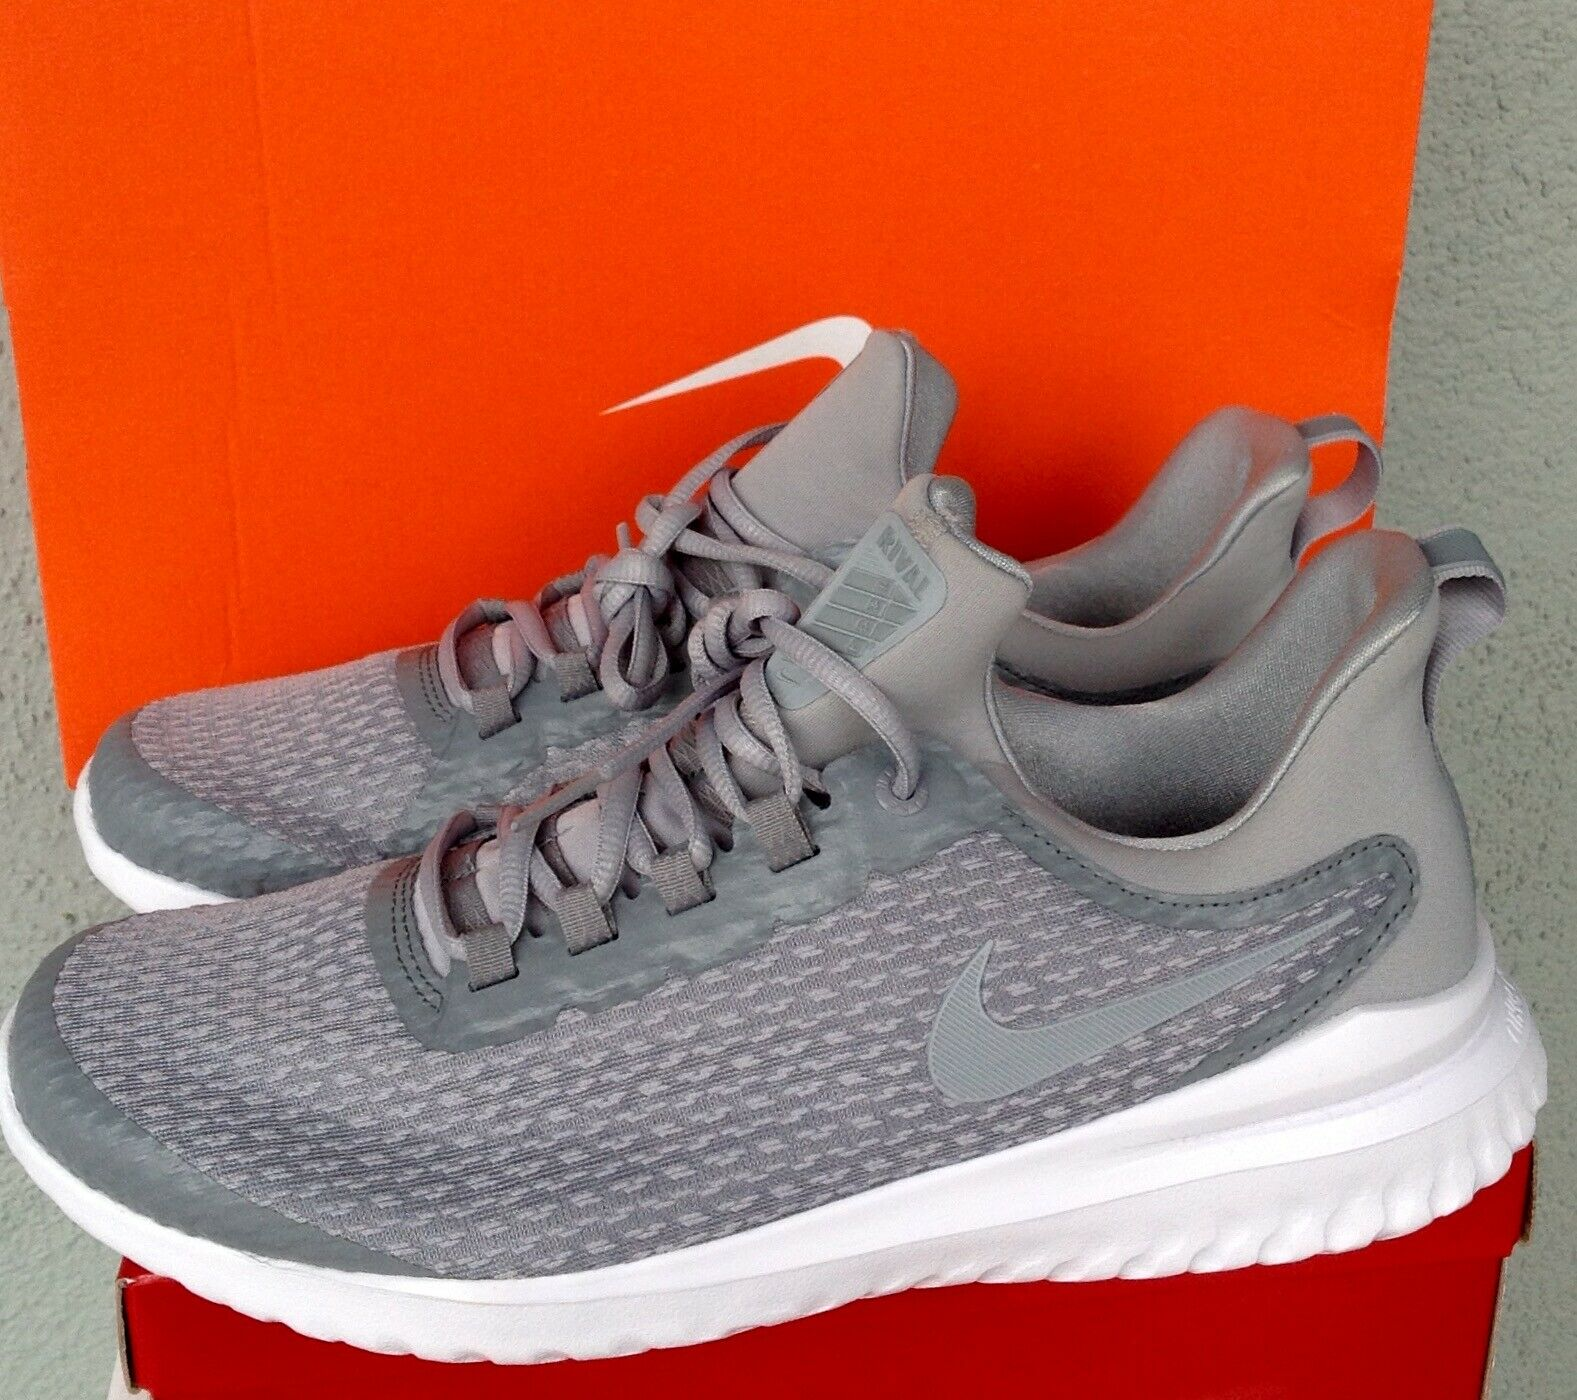 Nike Renew Rival AA7400-006 Stealth Wolf Grey White Men's Running shoes NEW